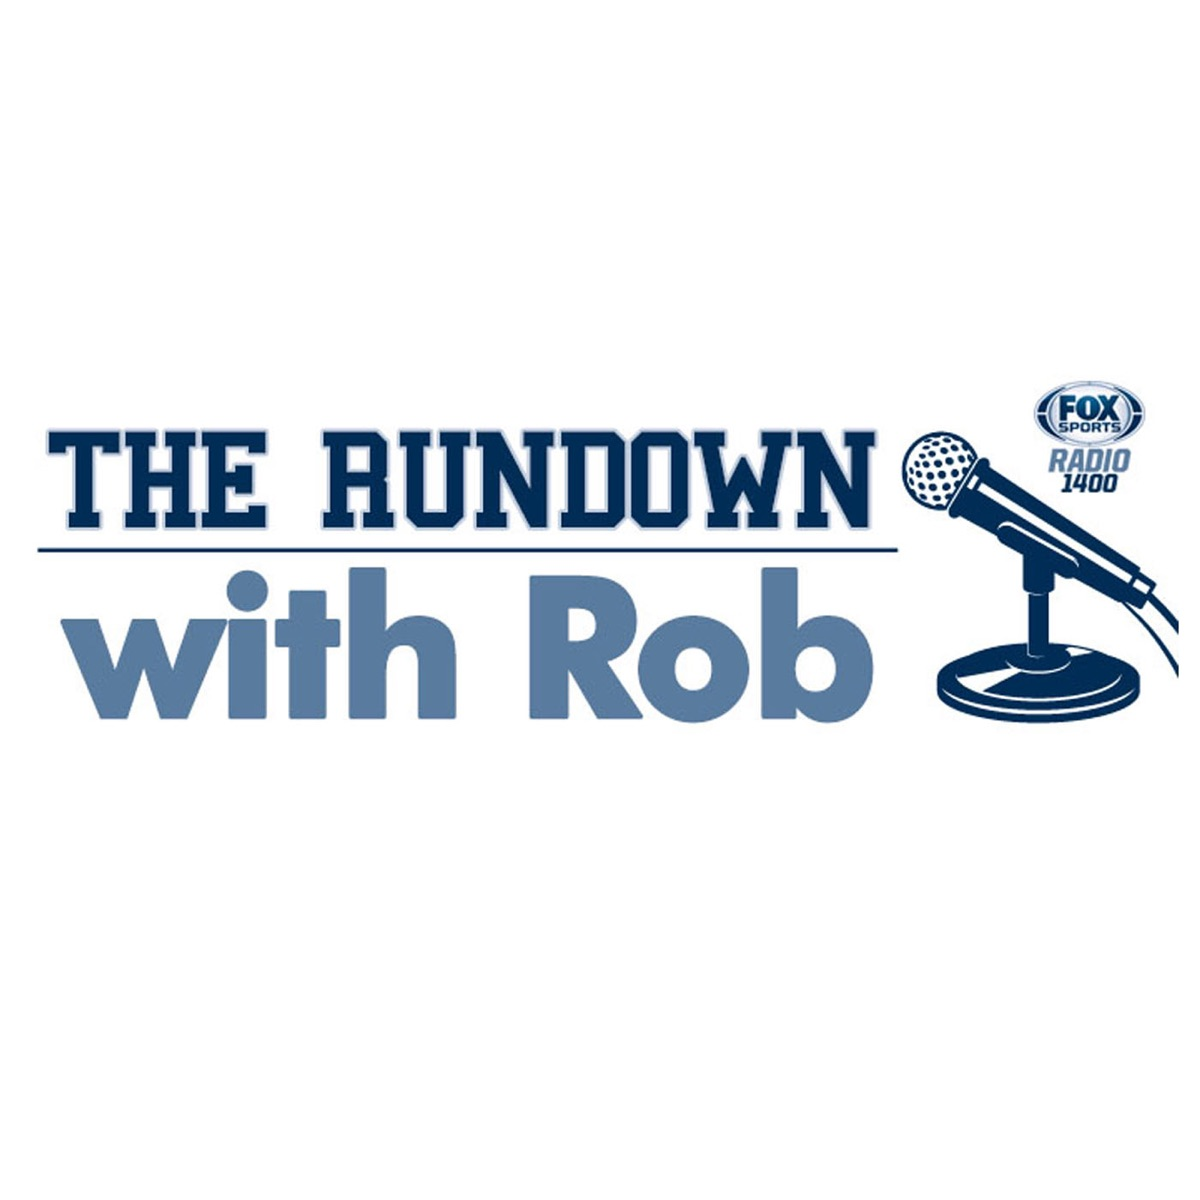 The Rundown with Rob Sanders